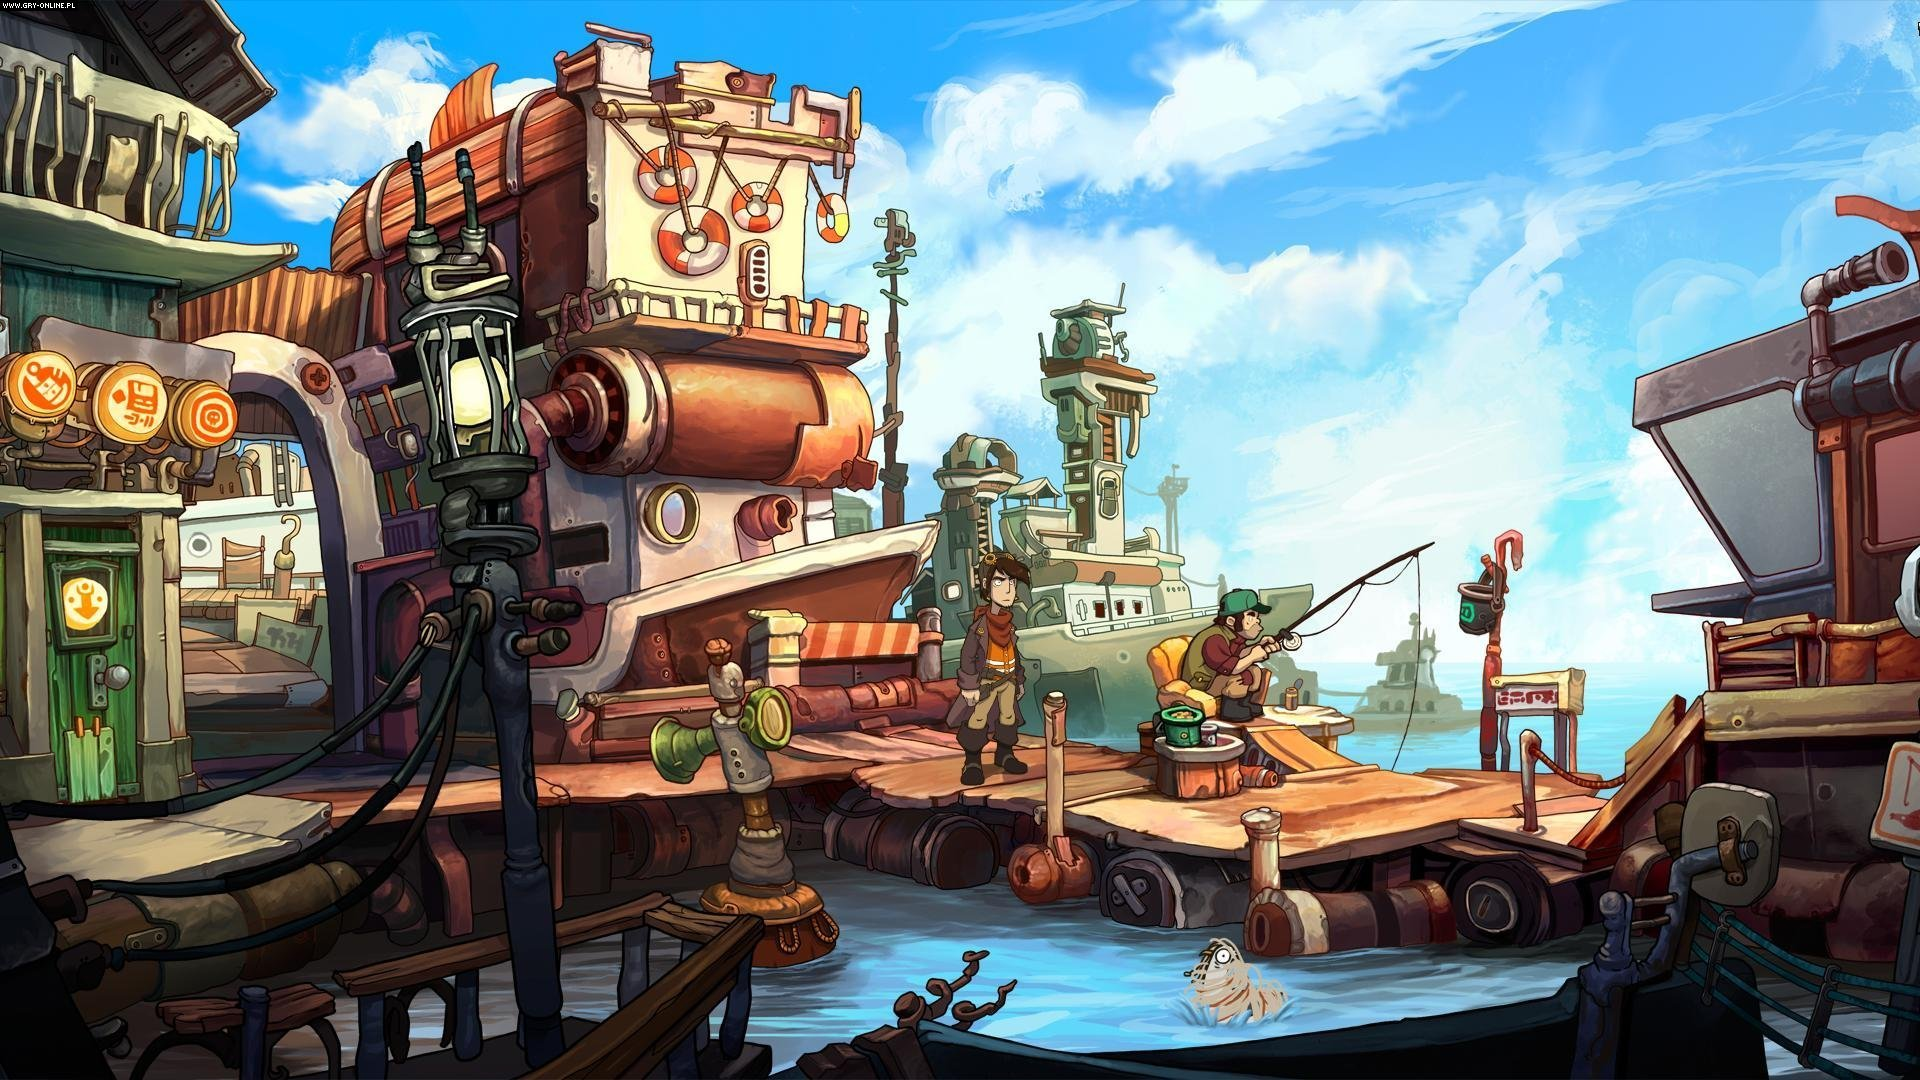 Chaos on Deponia PC, PS4, XONE Gry Screen 8/9, Daedalic Entertainment